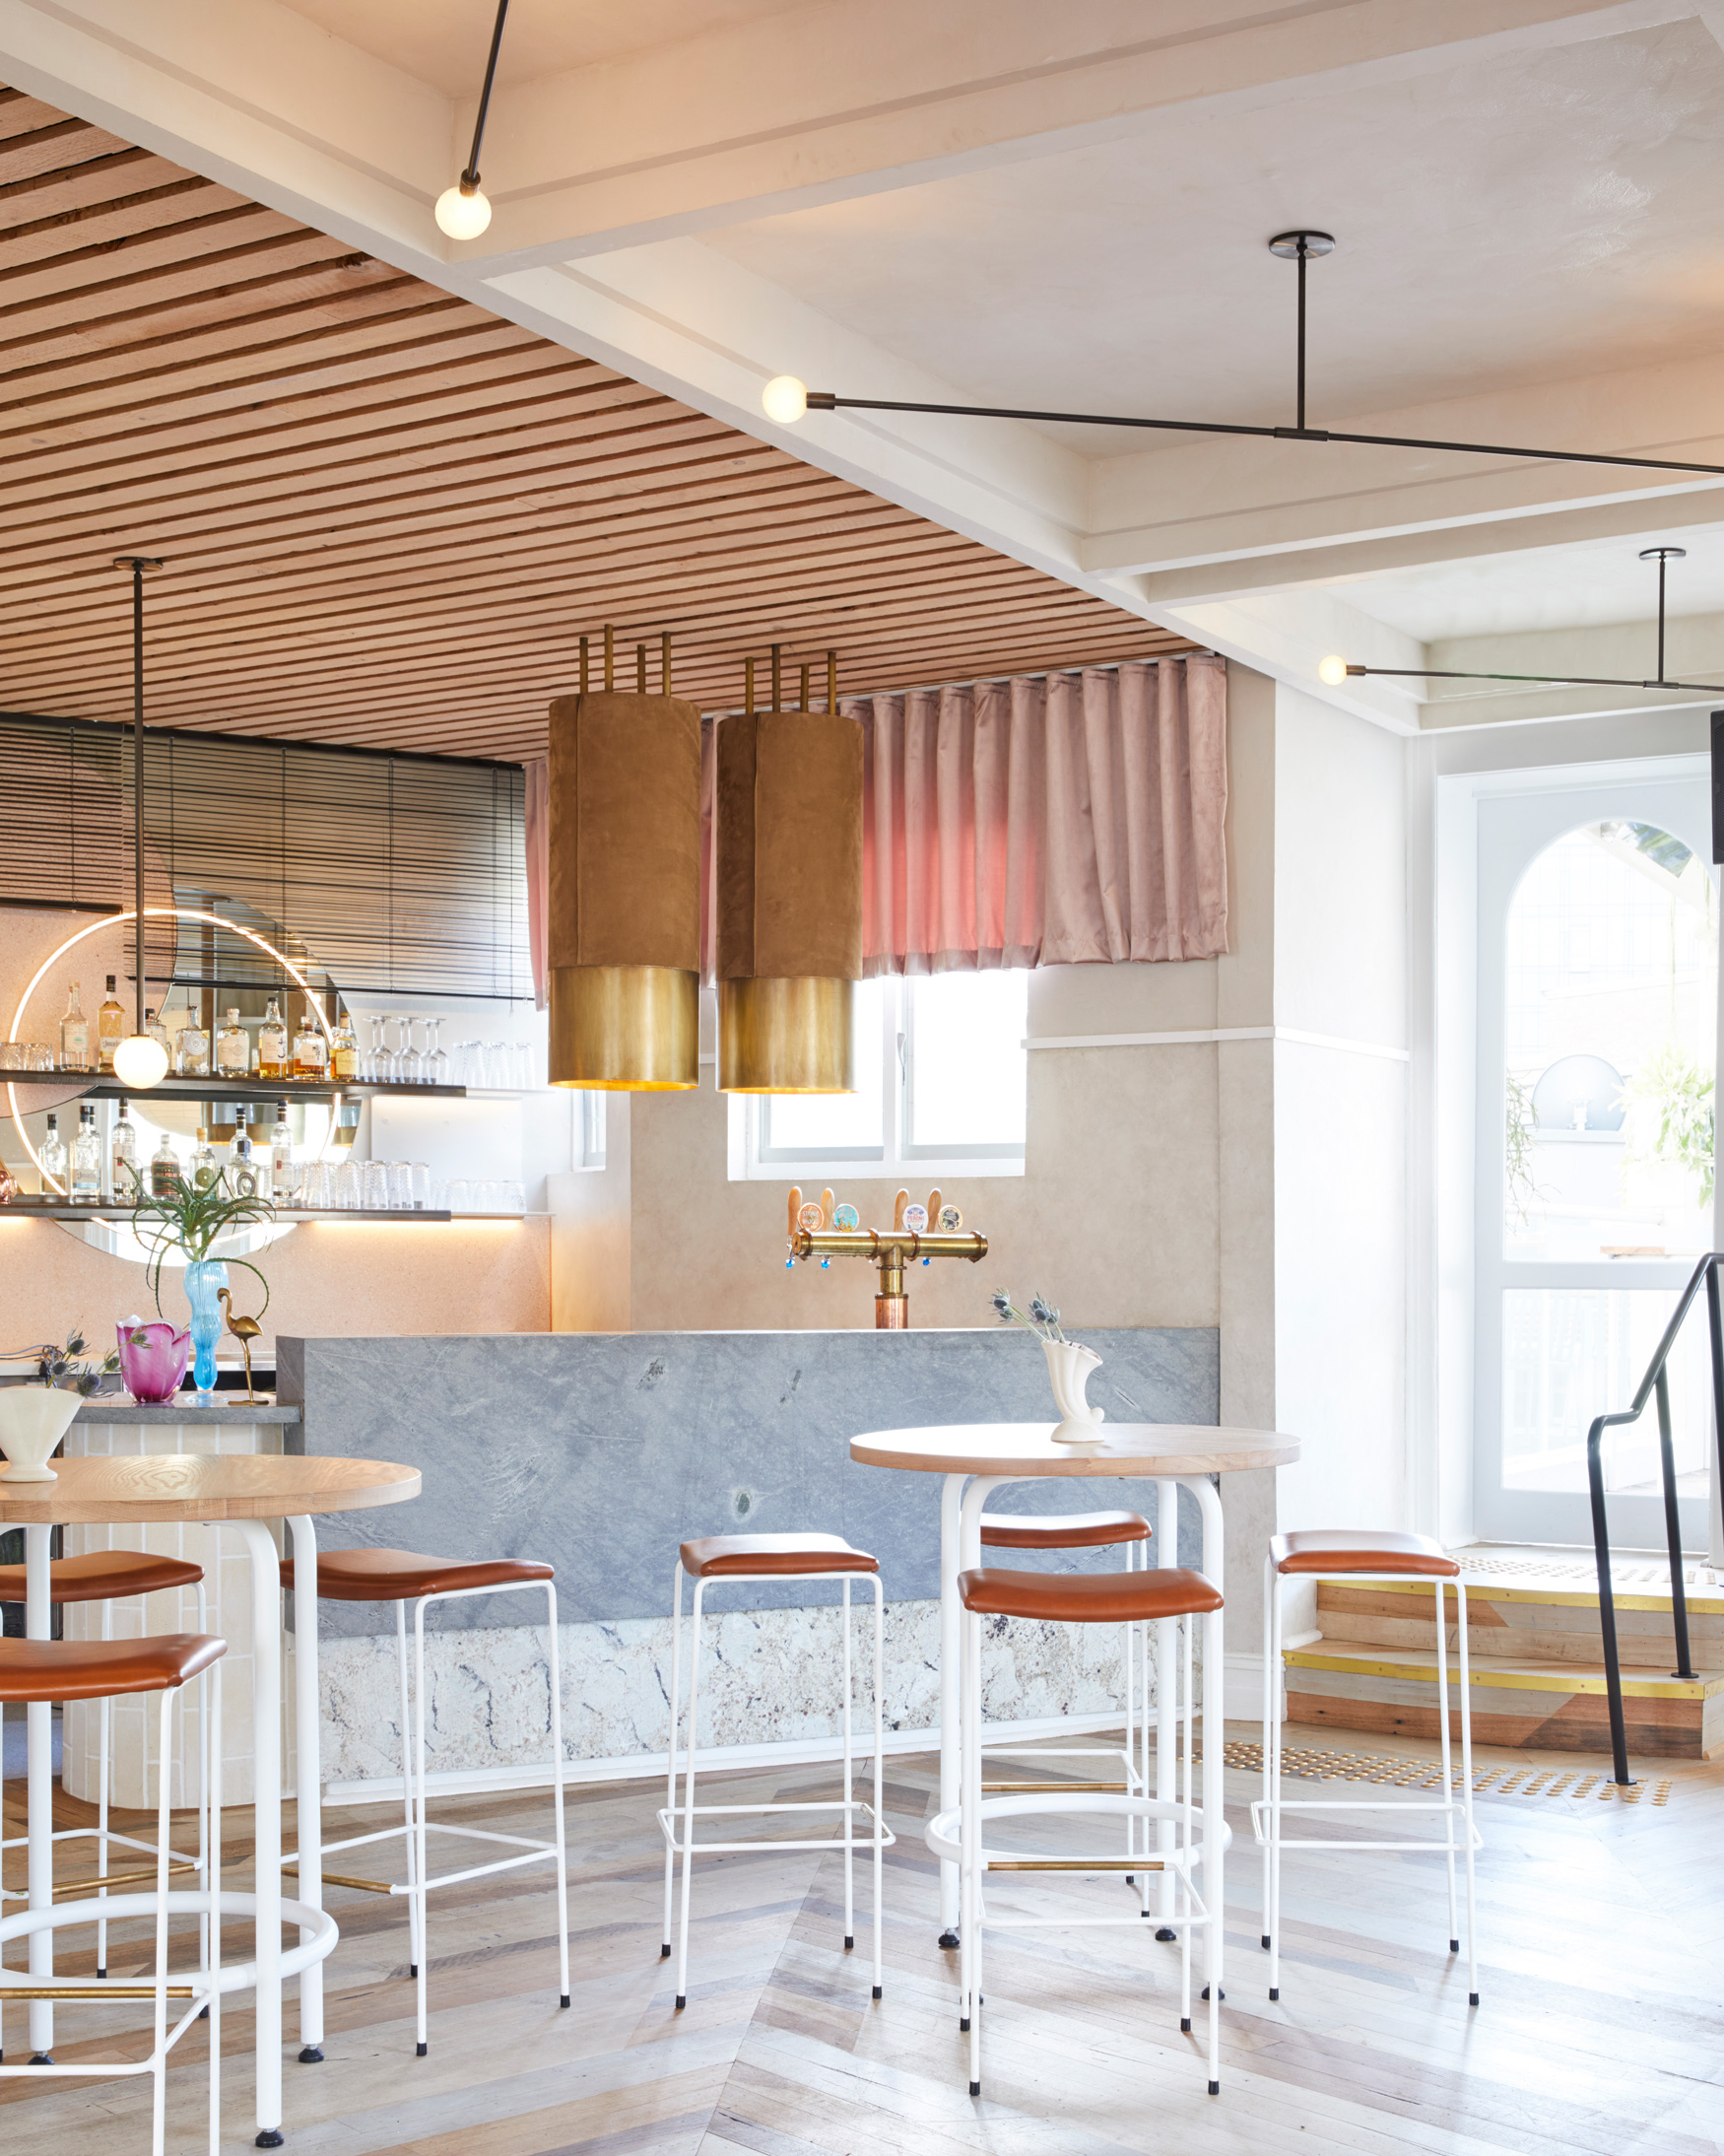 Envisioned As A Feminine Bar Experience, The Rooftop Is Adorned With Gentle Pastel Tones & Is Light, Bright & Open